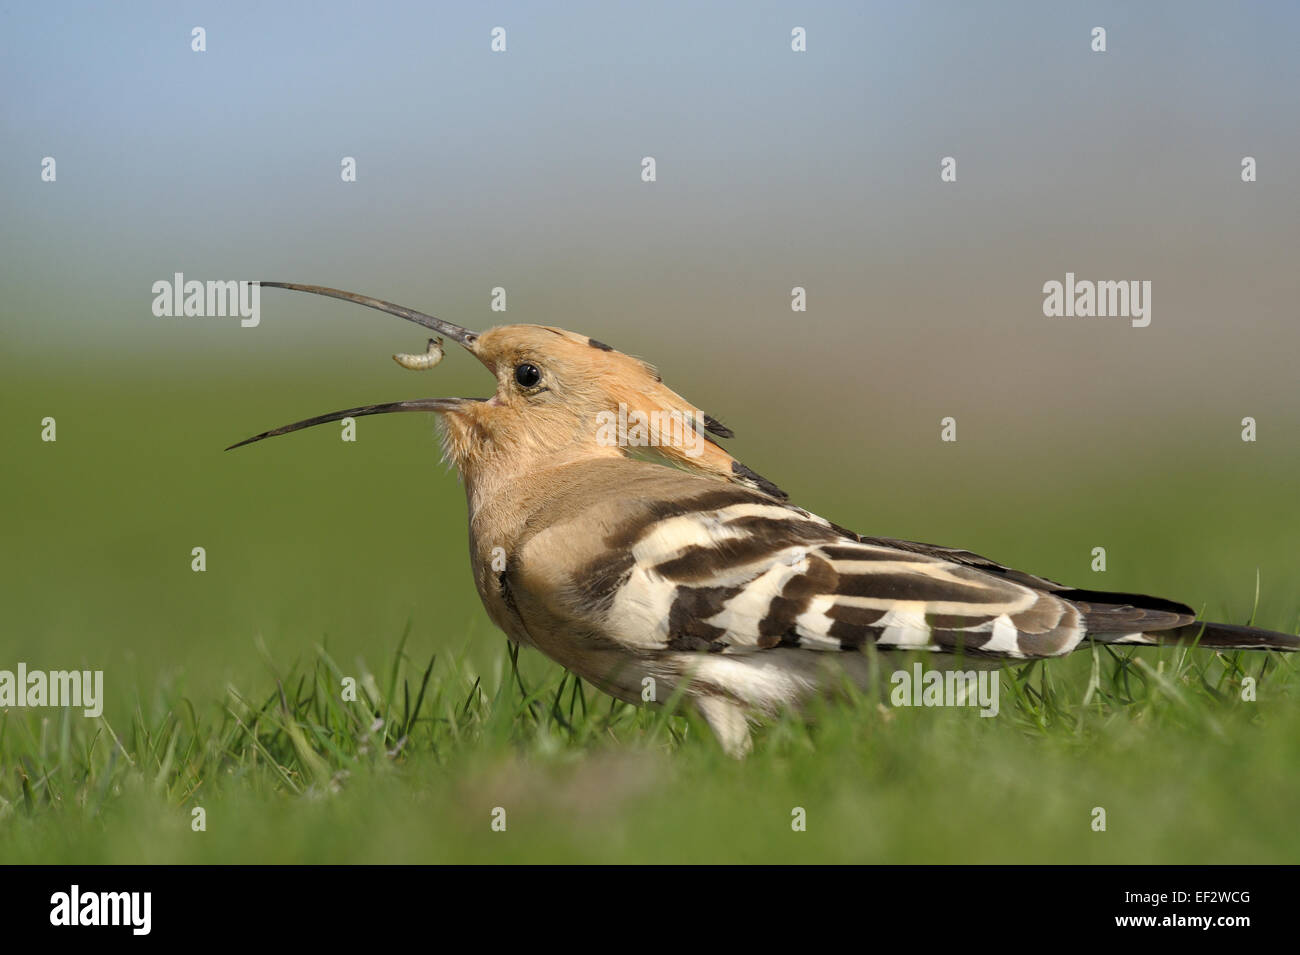 Hoopoe with prey. - Stock Image